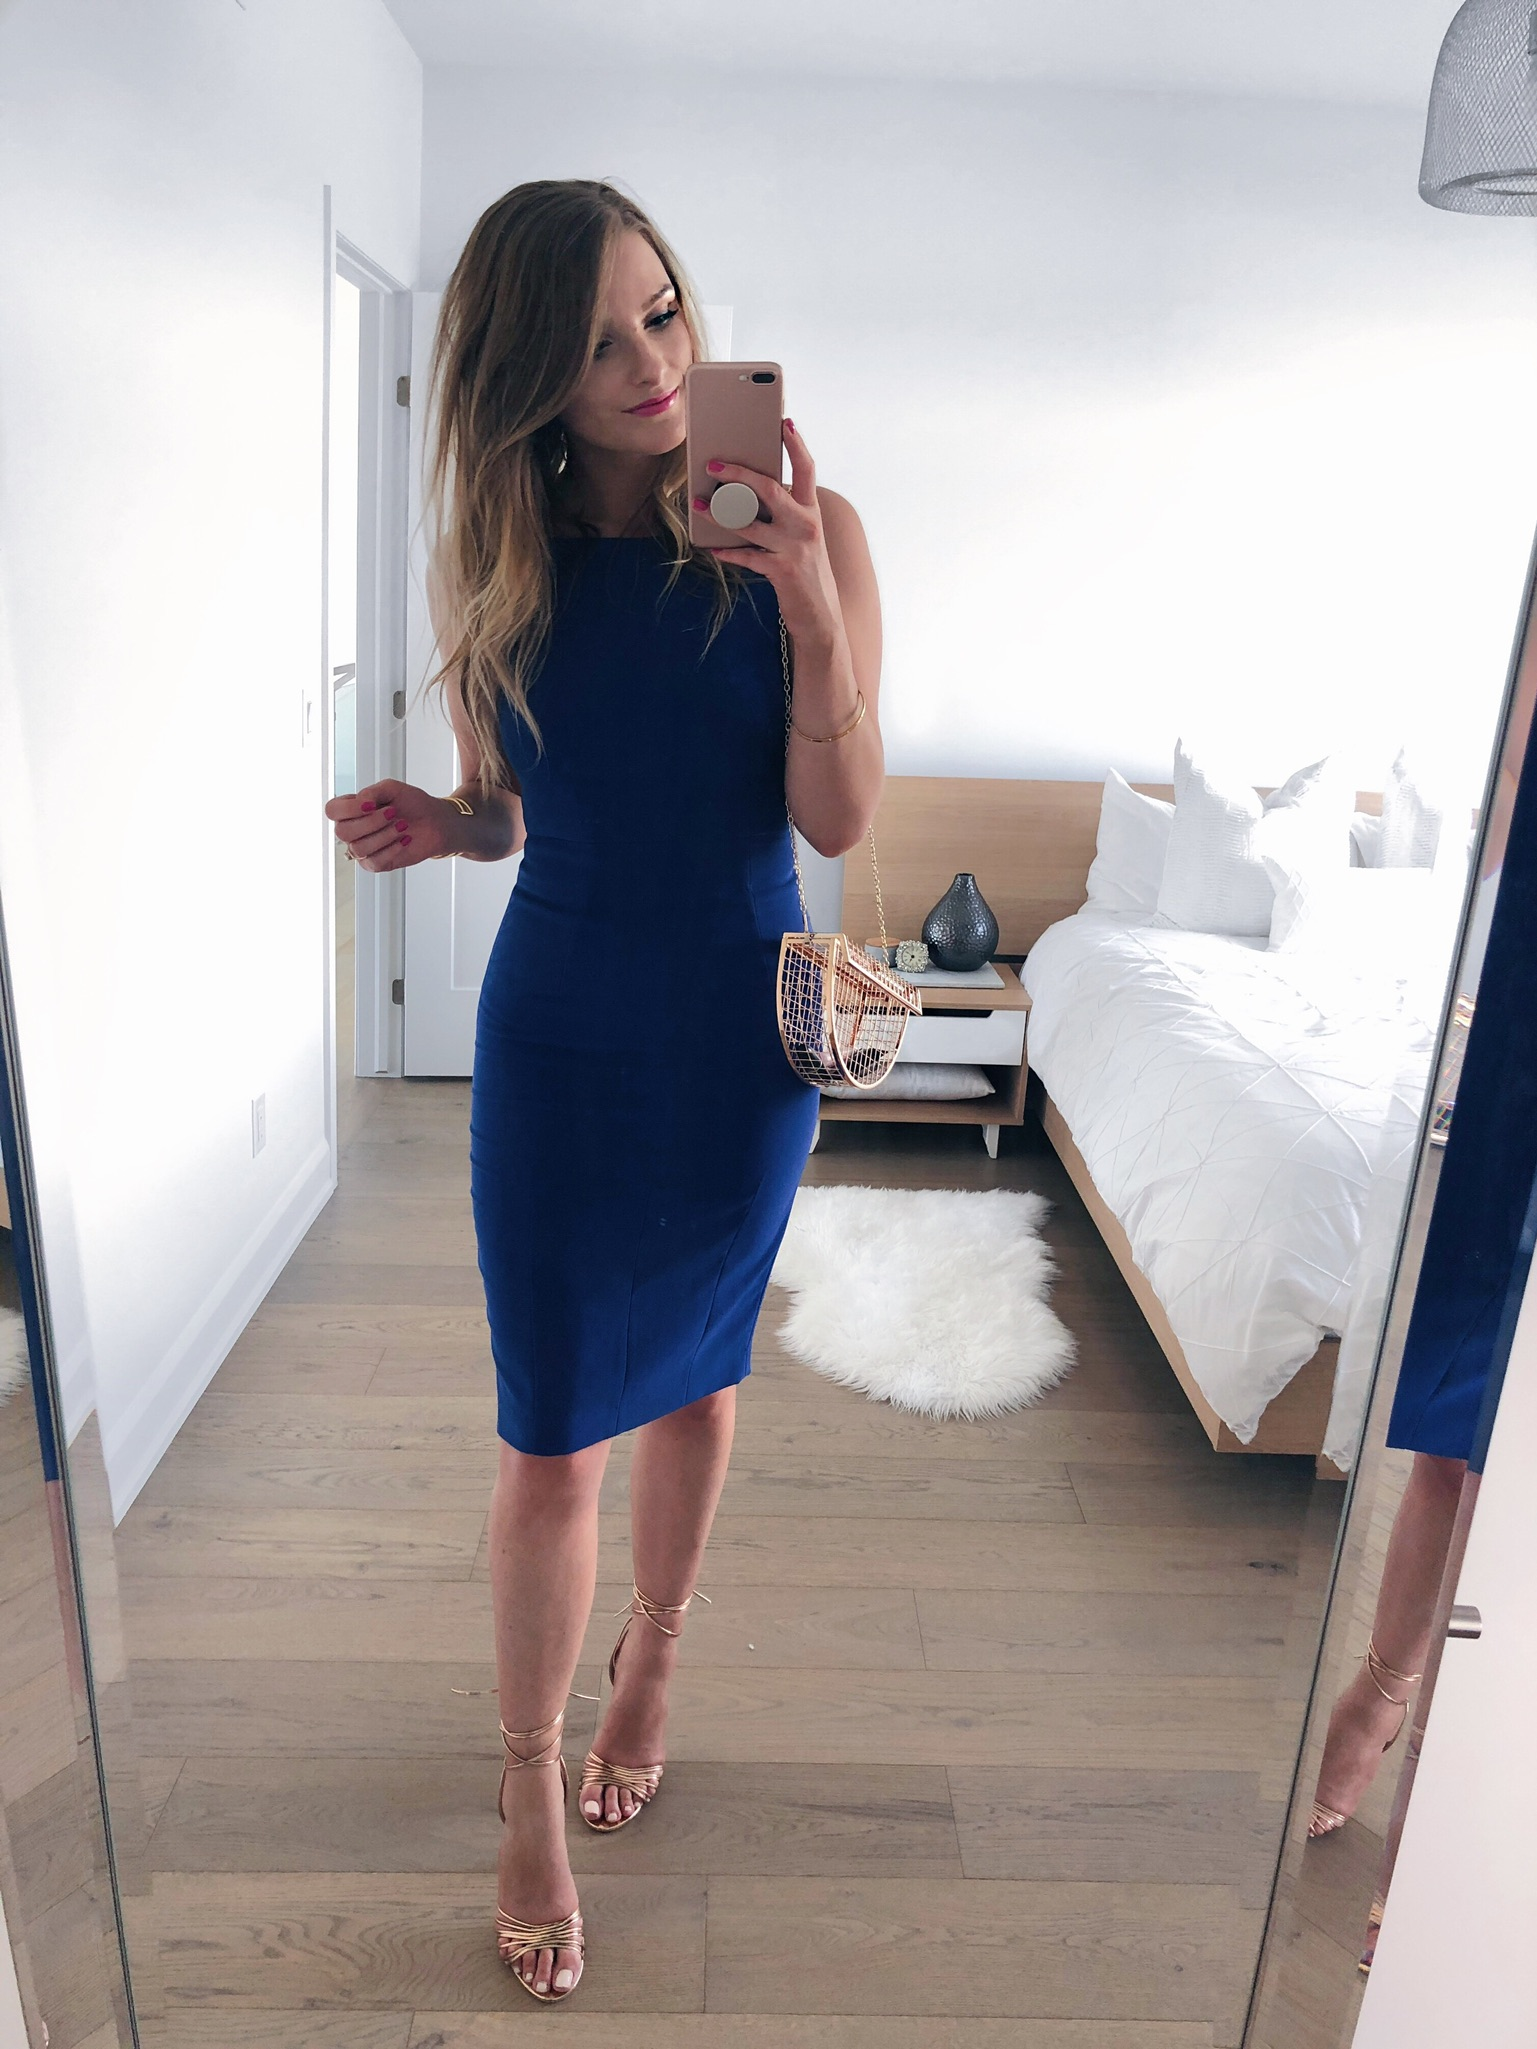 1 person, mirror selfie, blue dress, wedding guest outfit